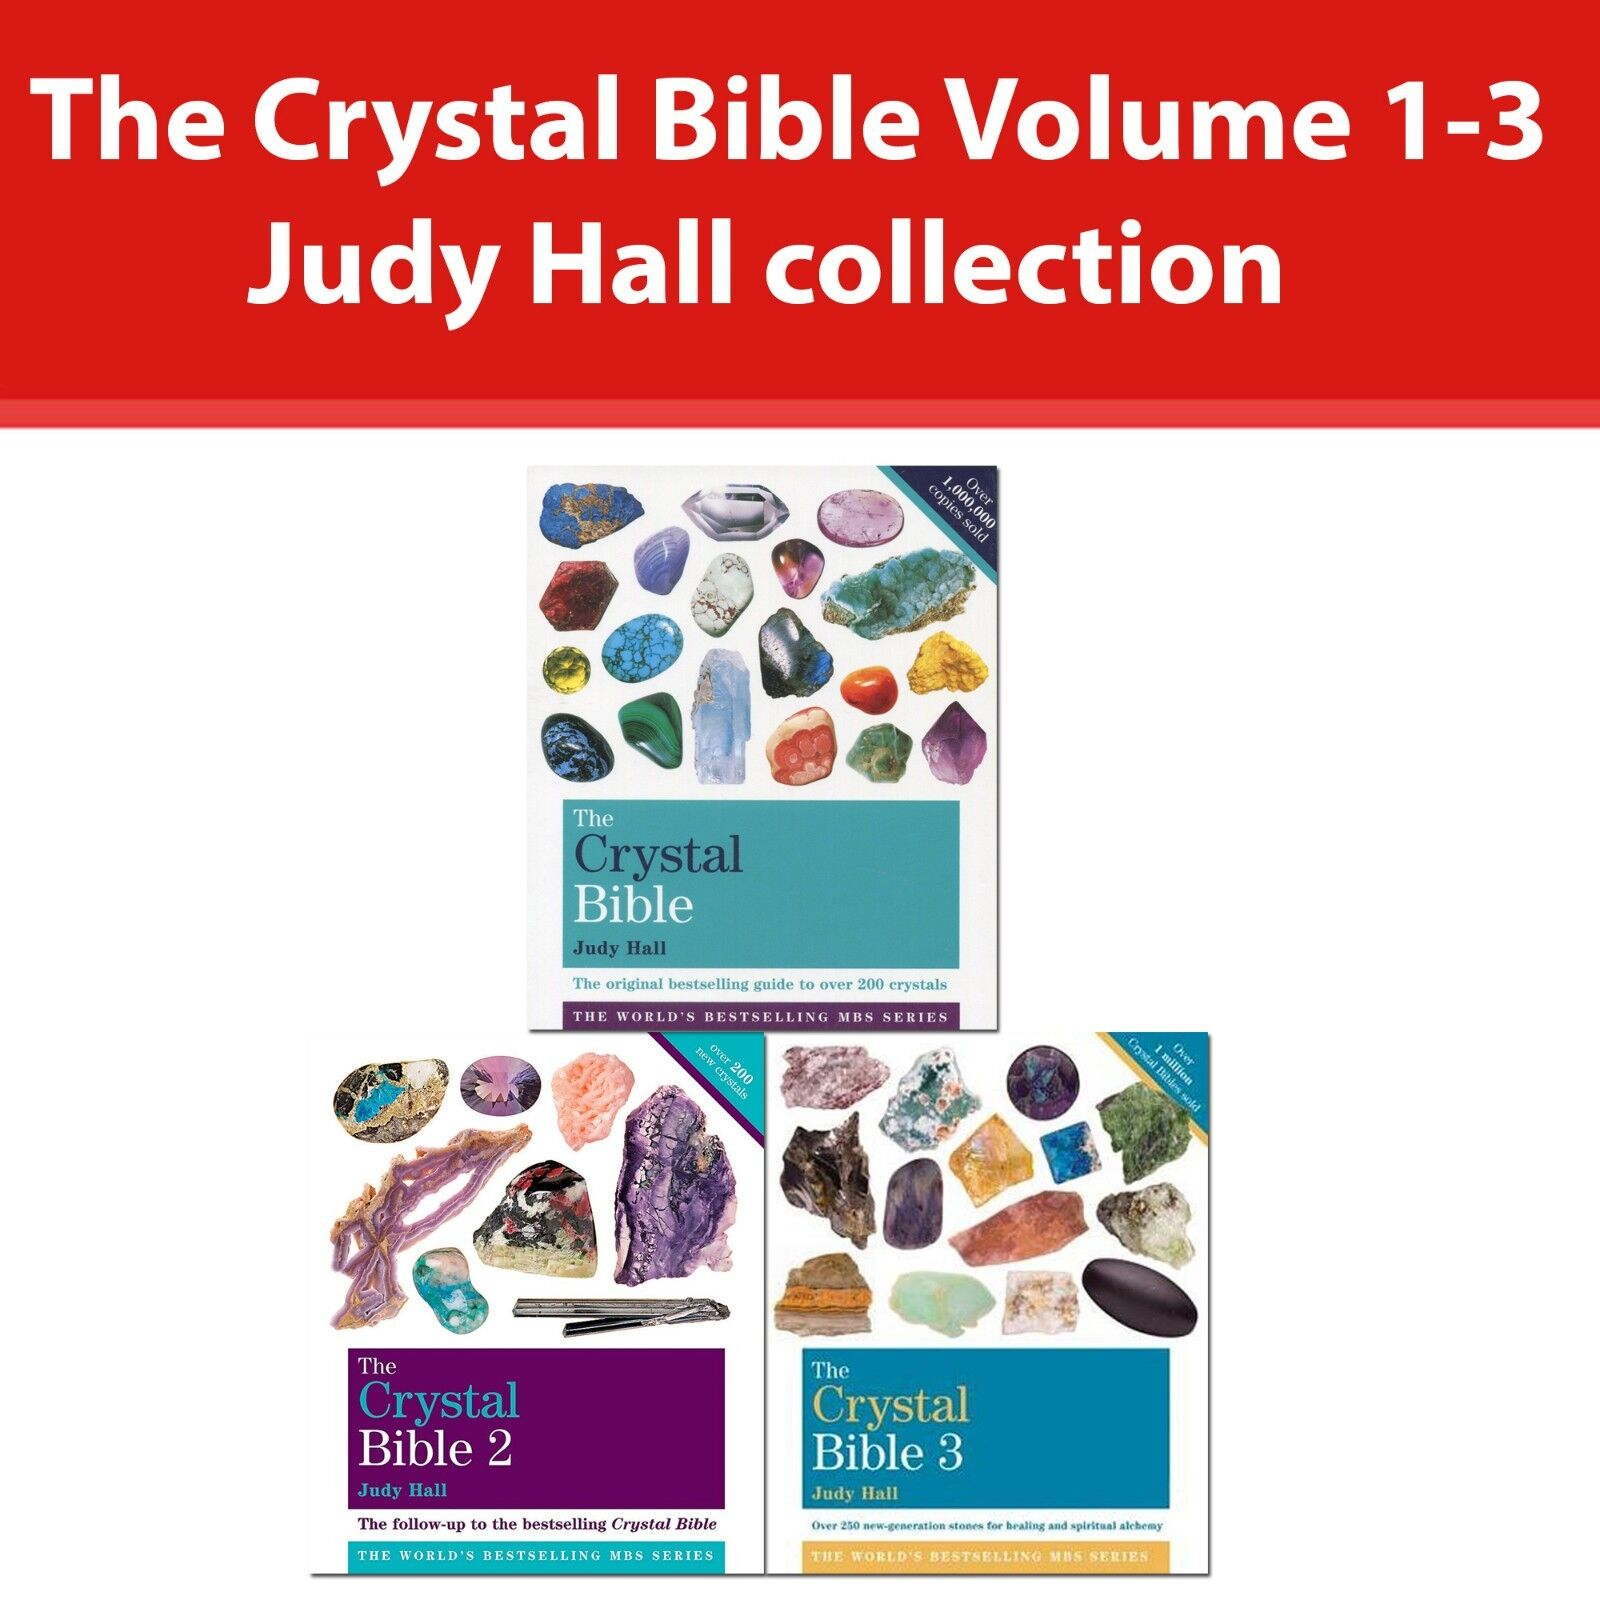 The Crystal Bible Volume 1-3 Judy Hall Collection 3 Books Set Godsfield Bibles